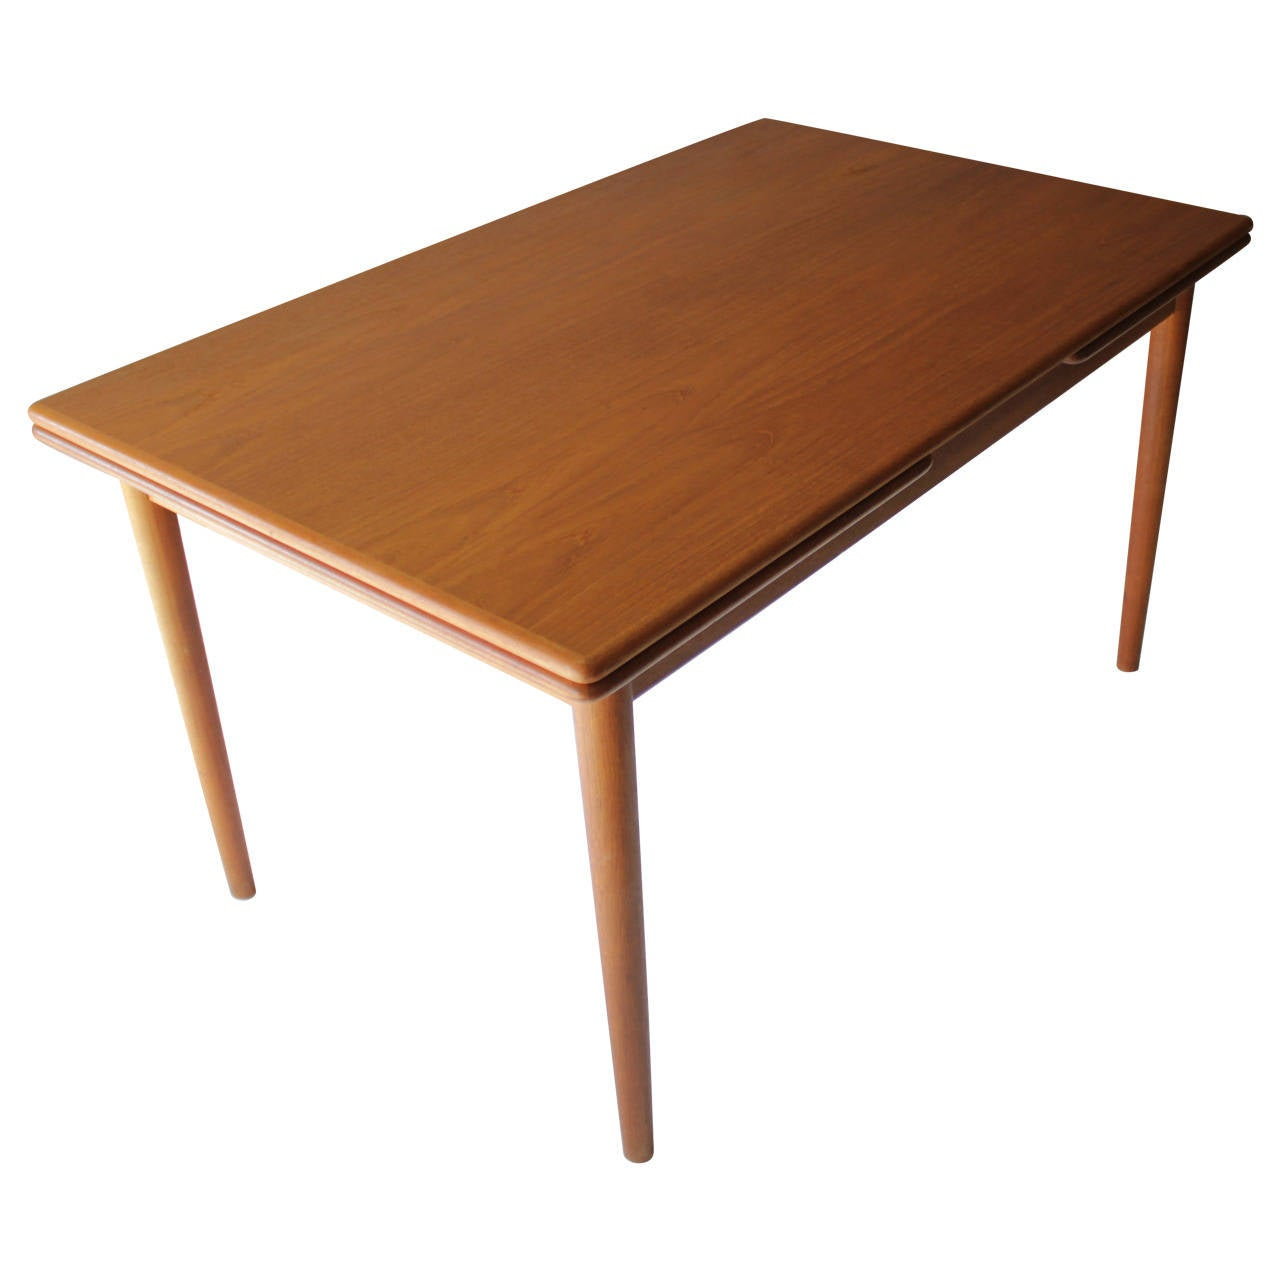 Danish Teak Dining Room Table With Two Leaves For Sale At